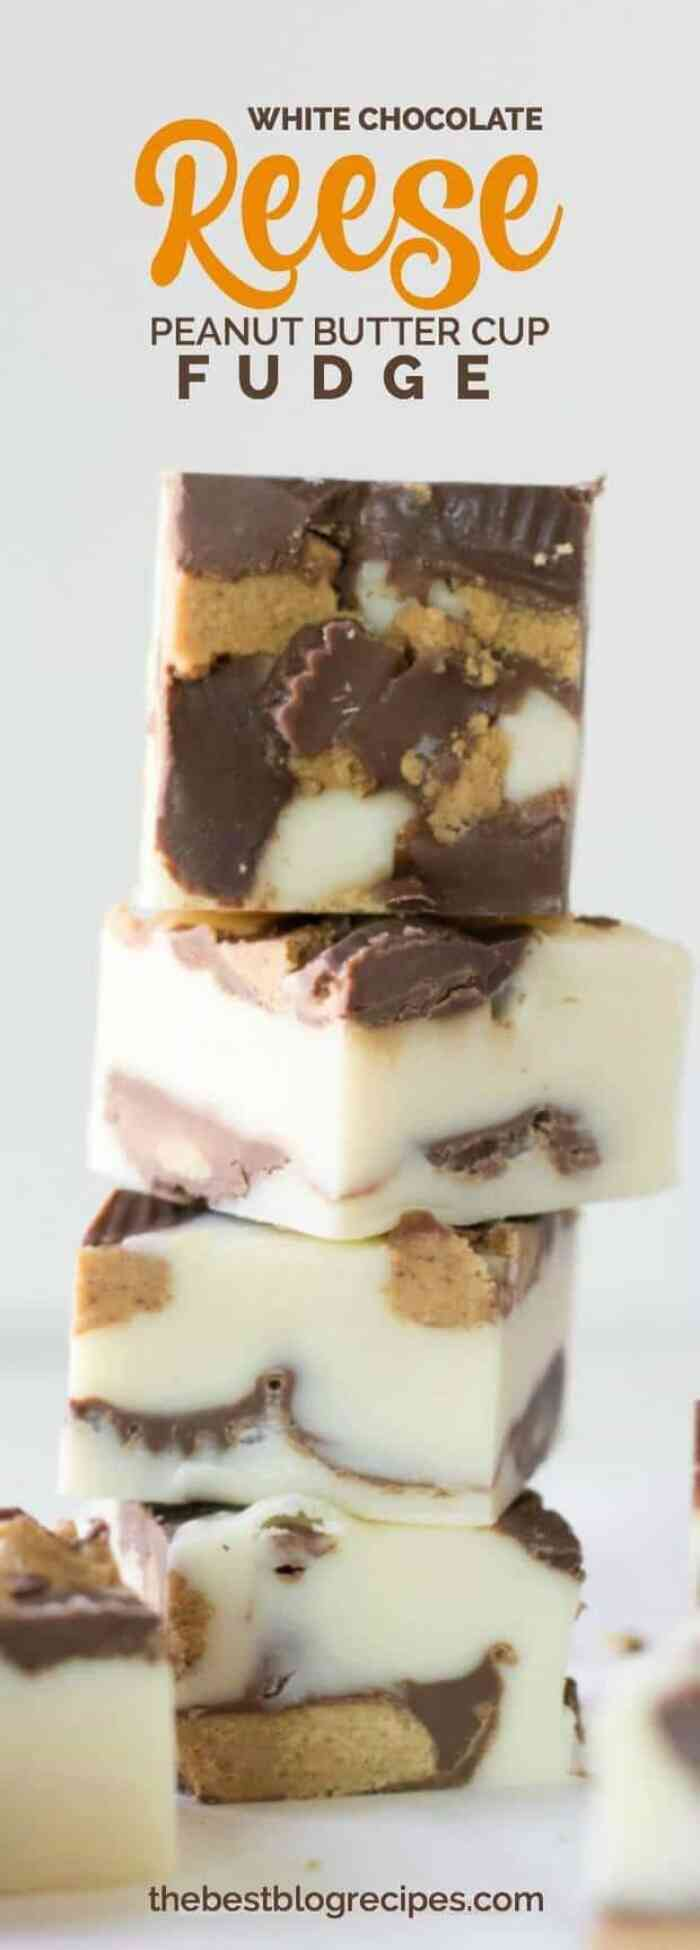 pinterest-white-chocolate-peanut-butter-cup-fudge